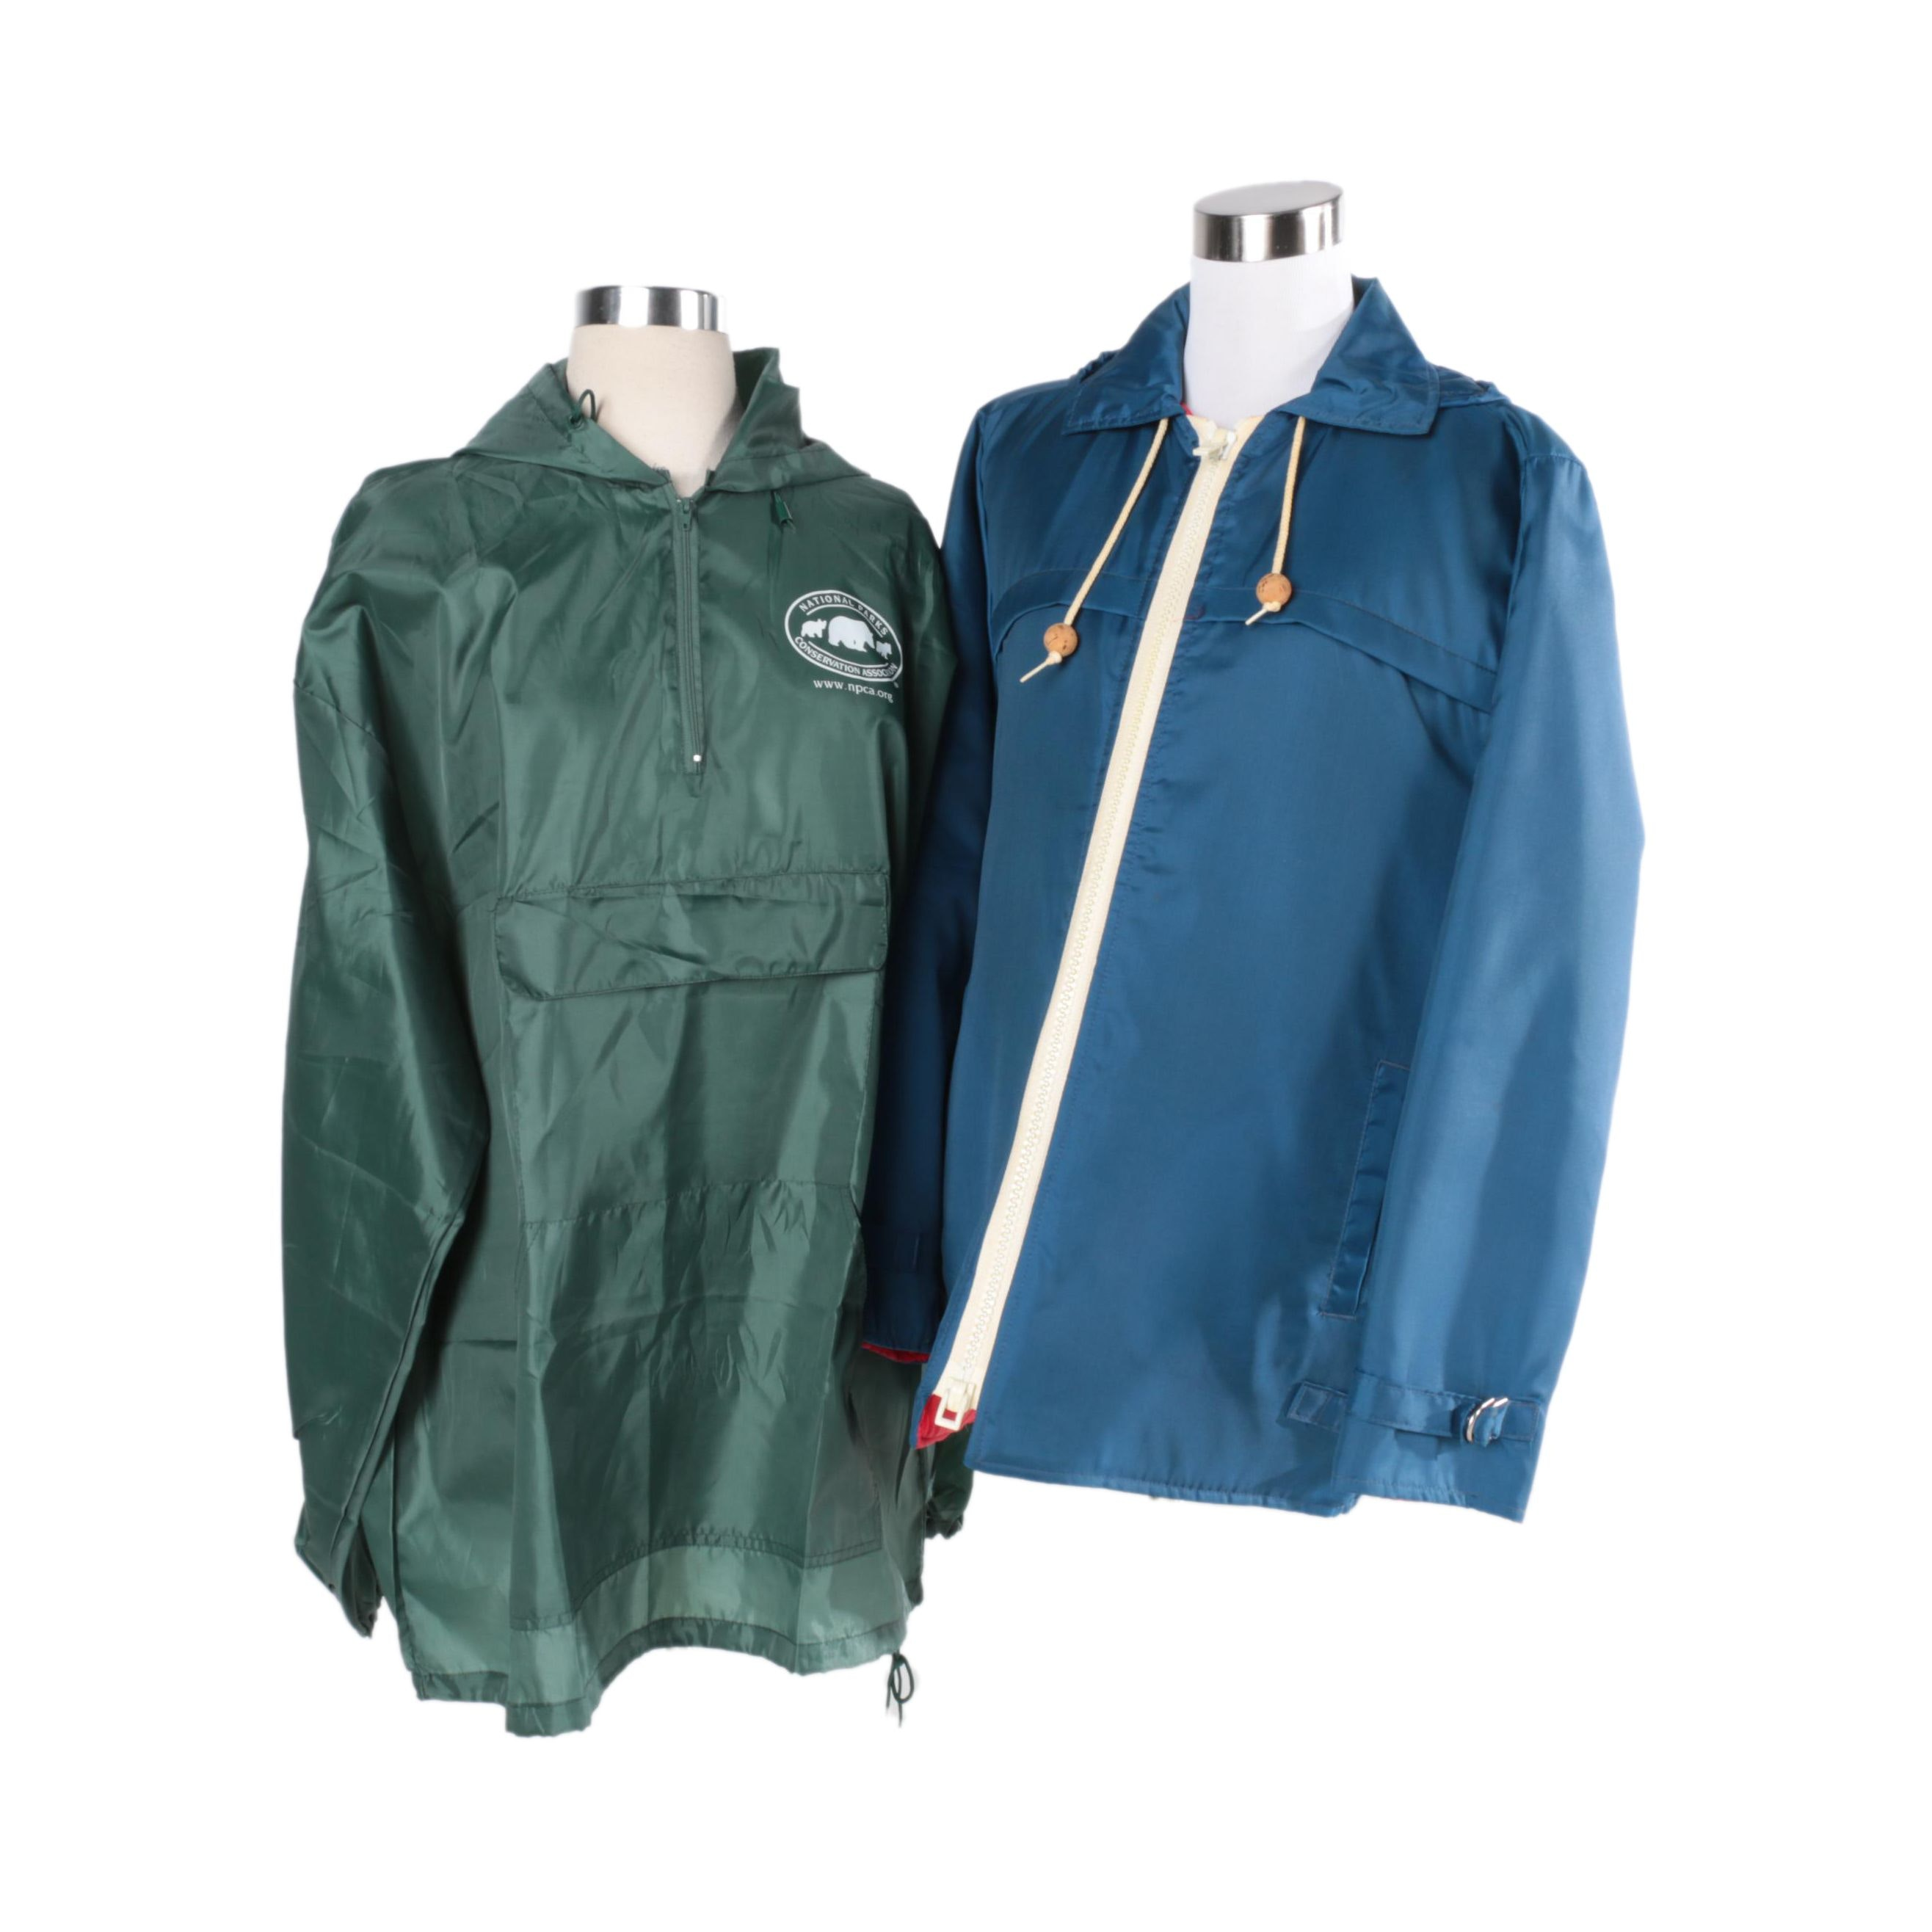 Women's Windbreakers Including L.L. Bean